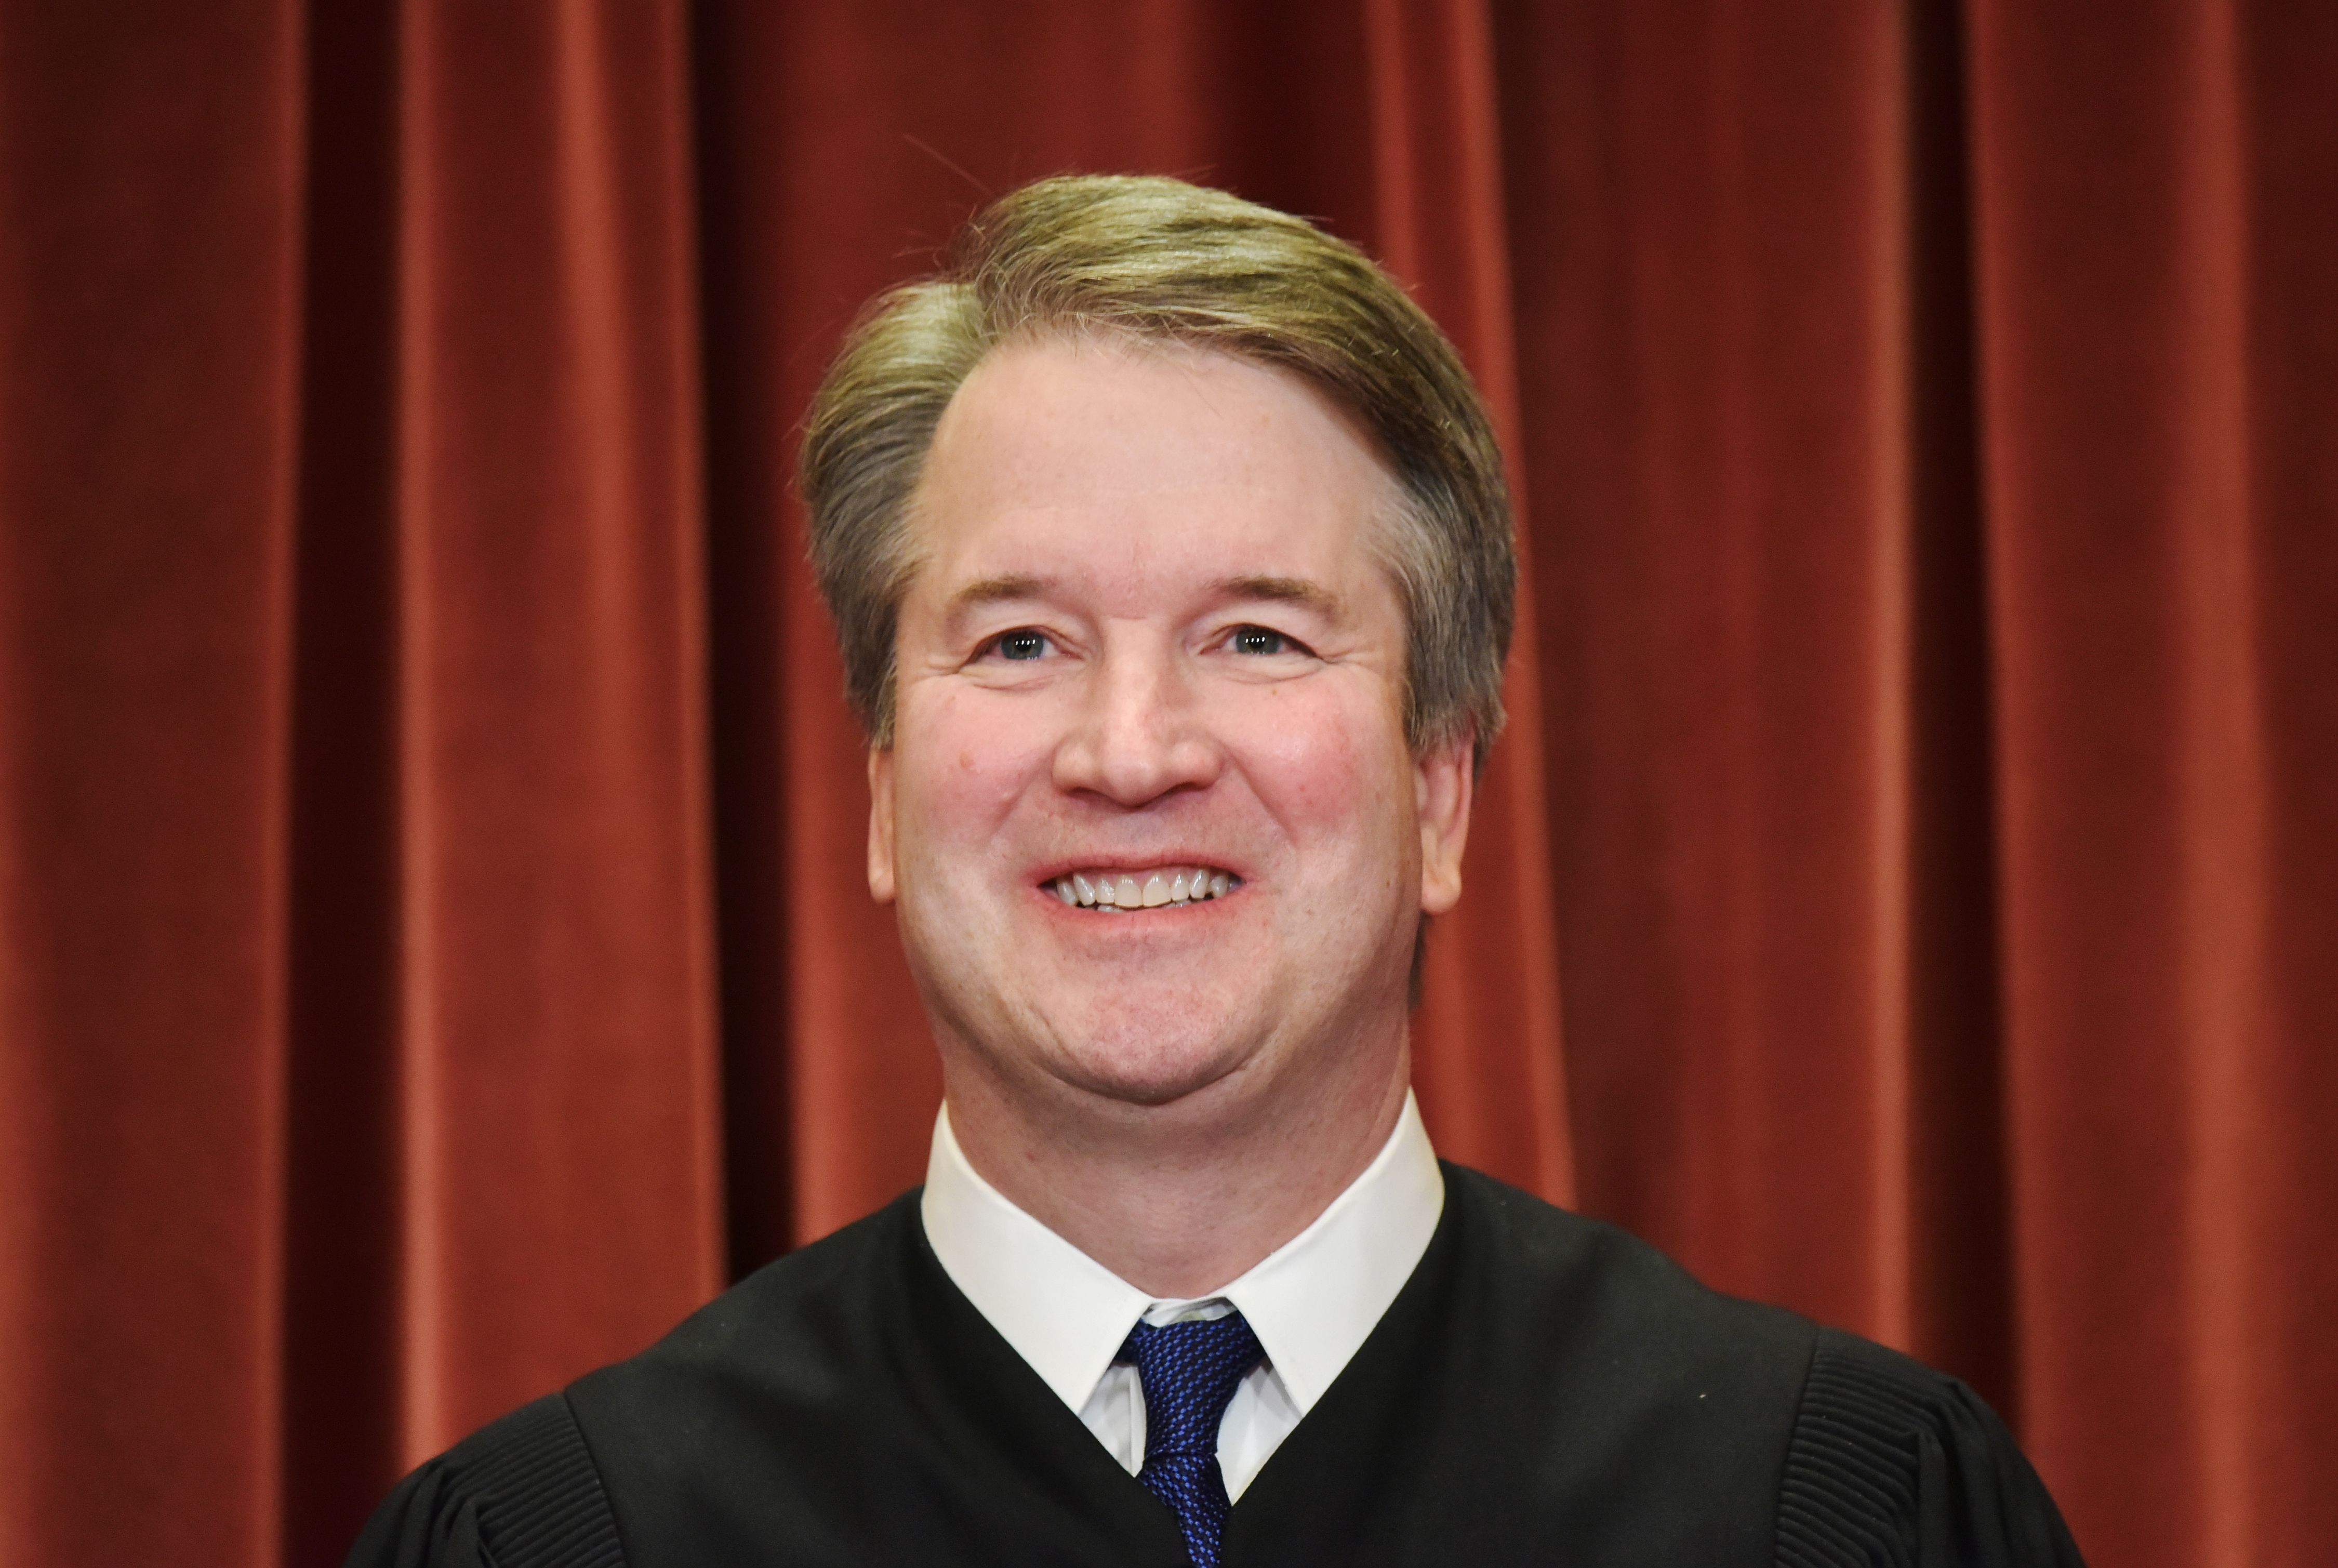 Justice Brett Kavanaugh in an official group photo at the Supreme Court on November 30, 2018. (Mandel Ngan/AFP/Getty Images)